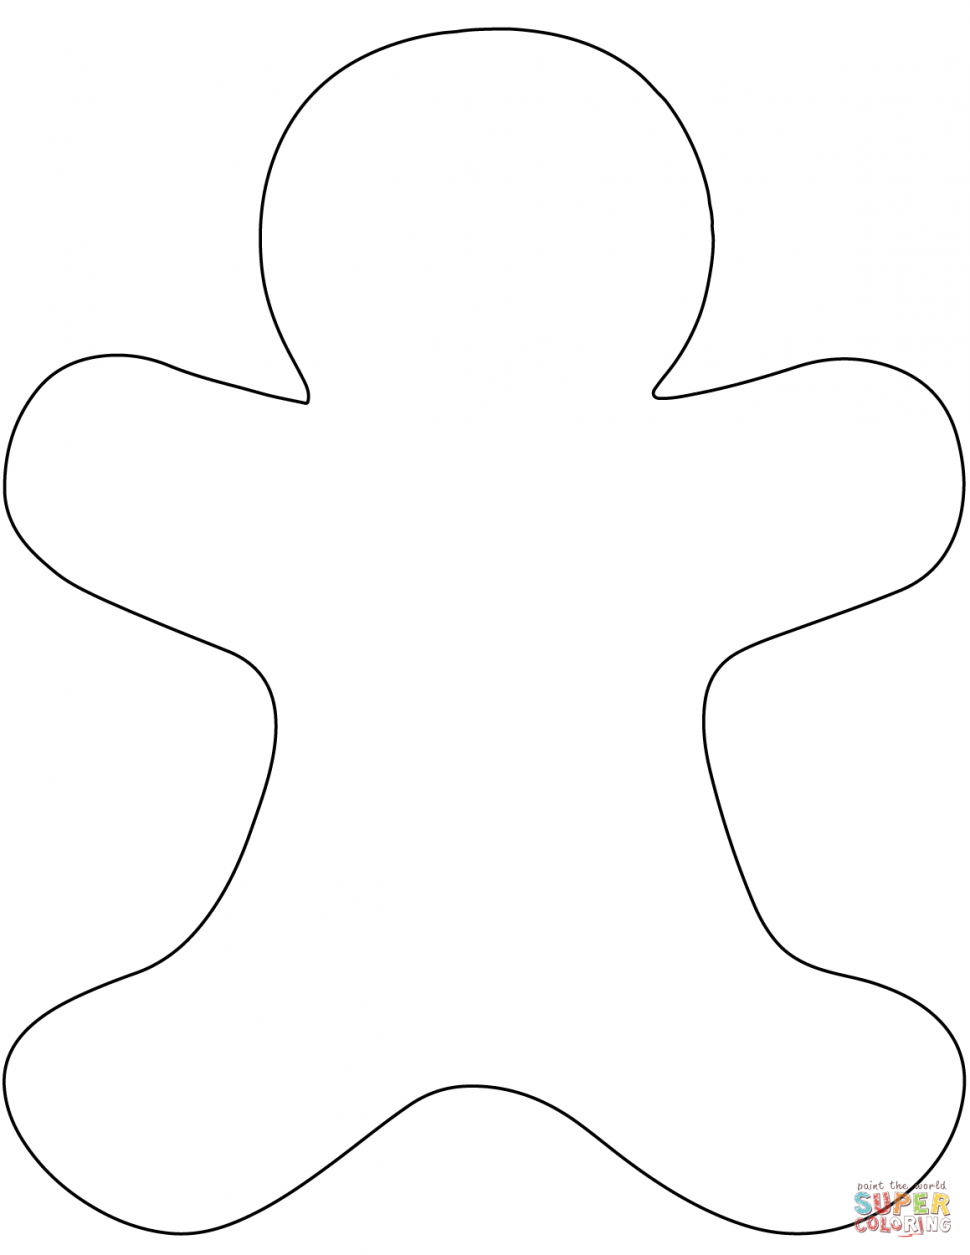 blank gingerbread man coloring page ginger bread men colouring pages gingerbread man man page gingerbread coloring blank